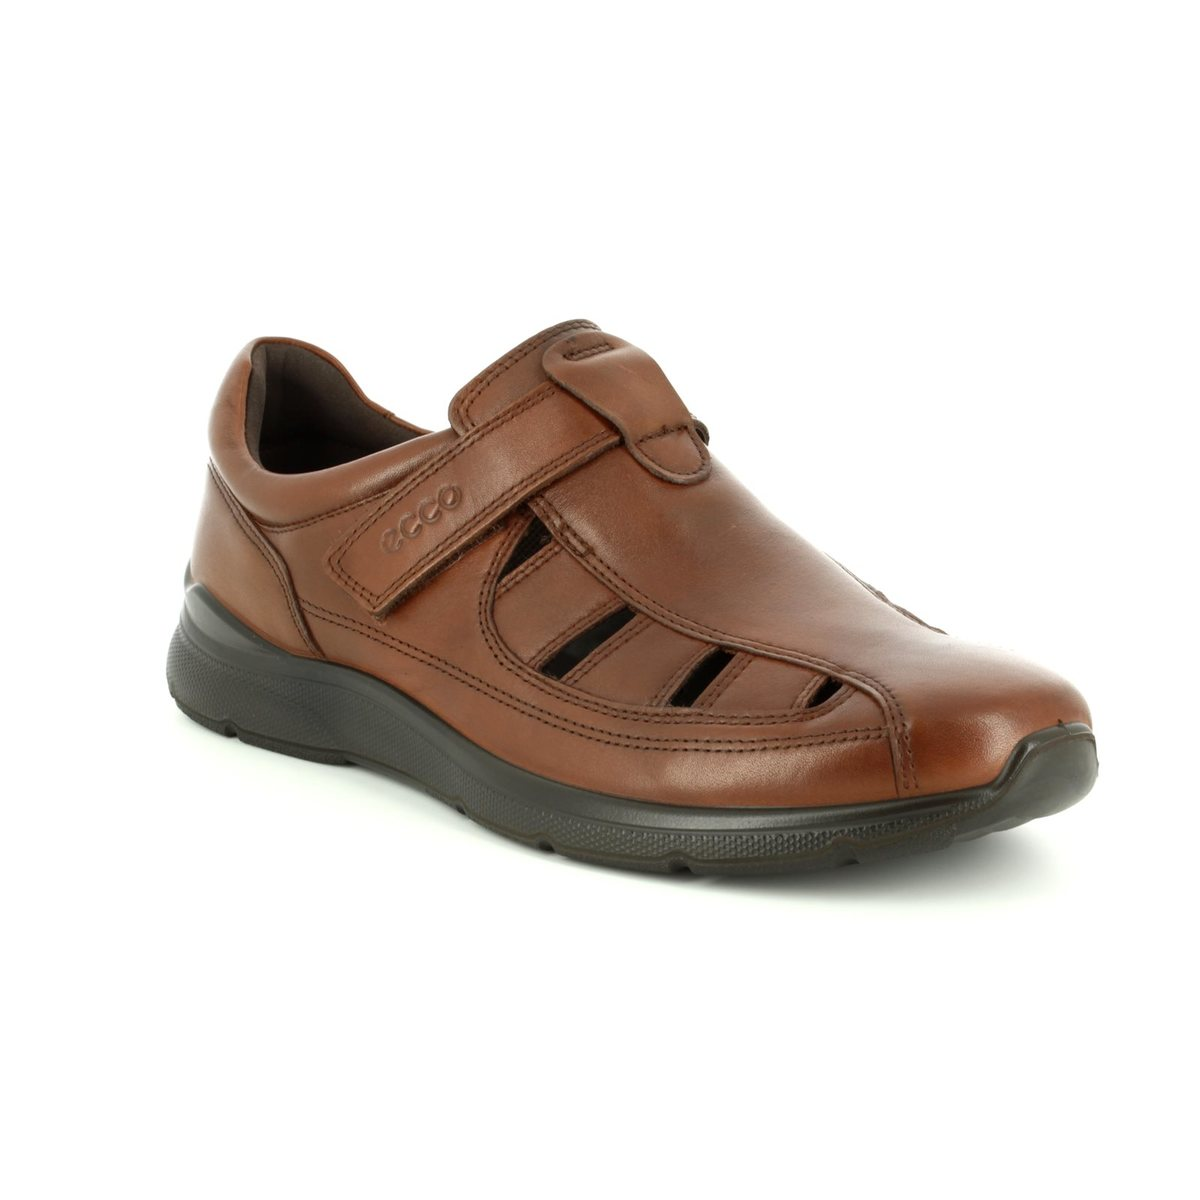 db8b1be78a61 ECCO Sandals - Brown - 511534 01053 IRVING